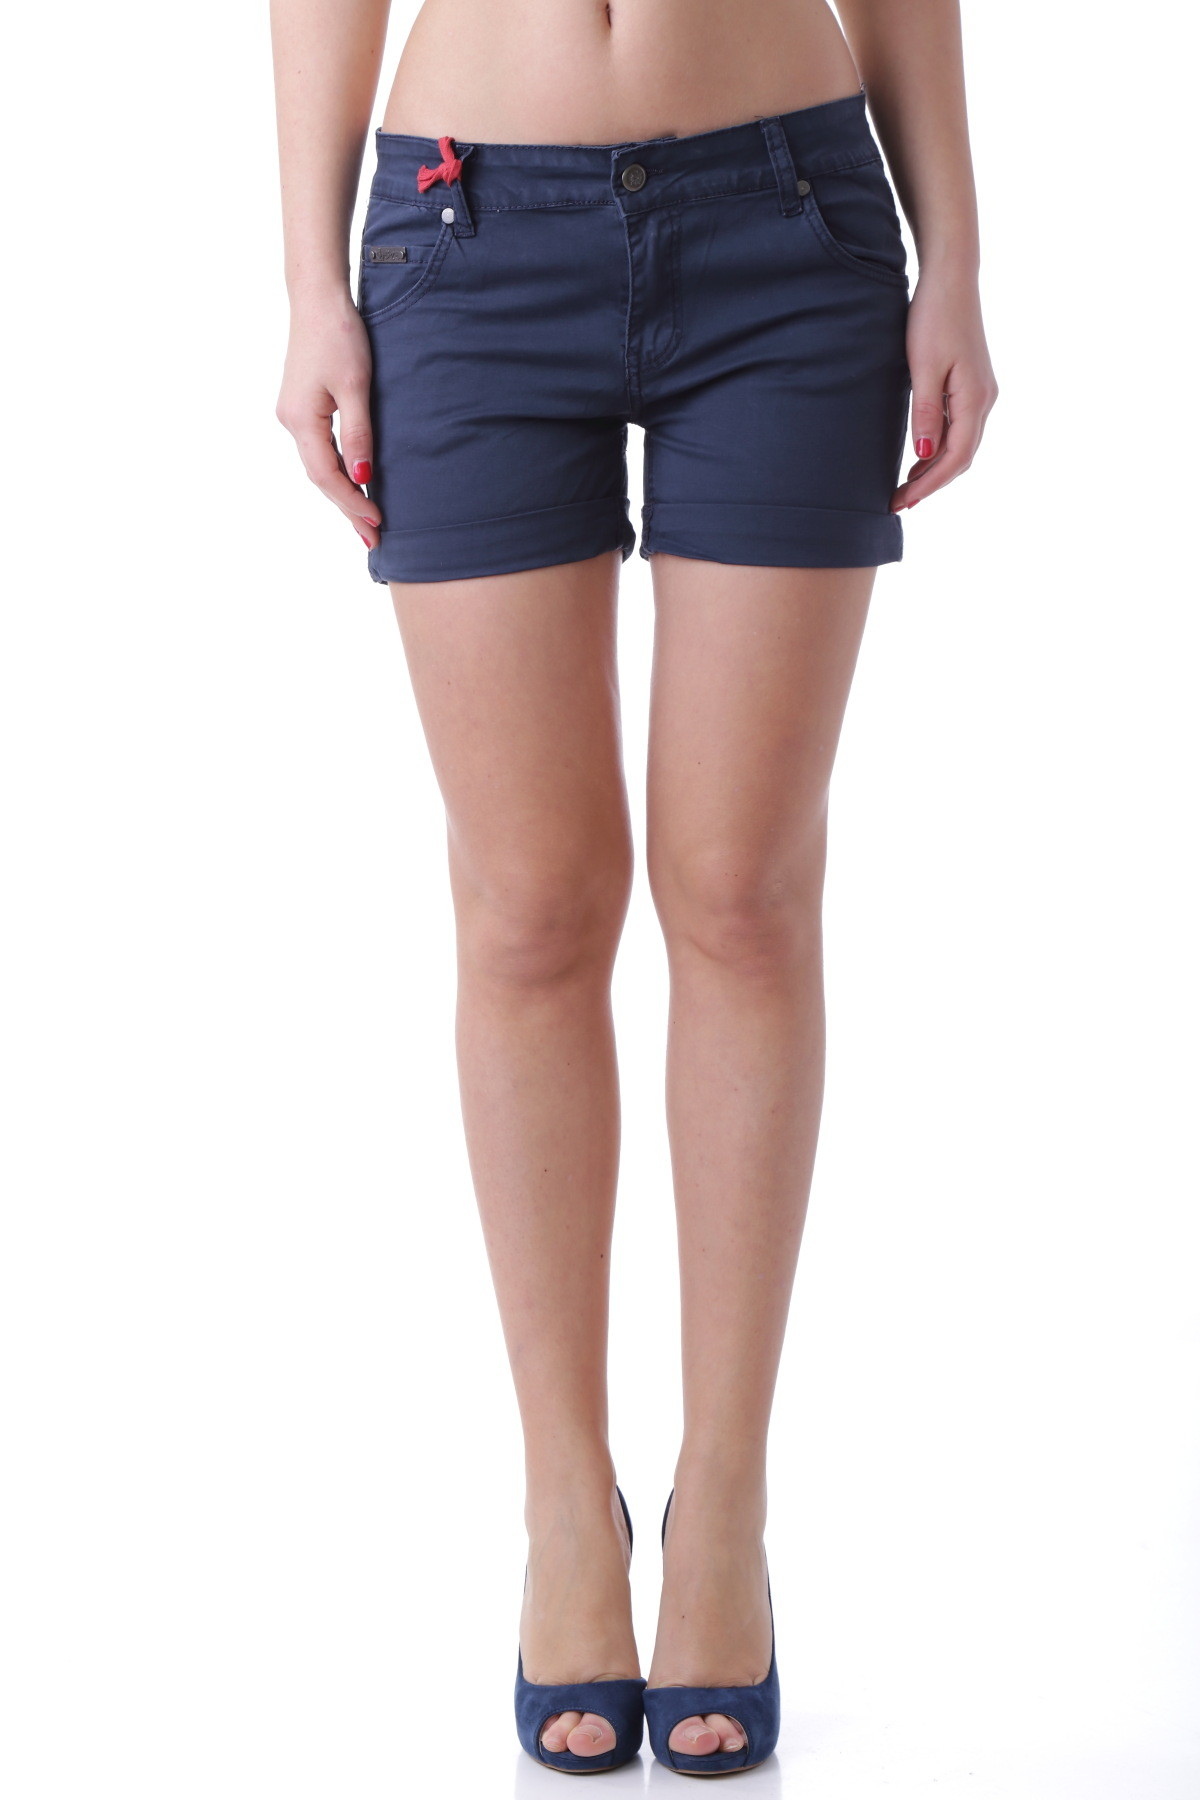 525Marchio: 525; Genere: Donna; Tipologia: Shorts;